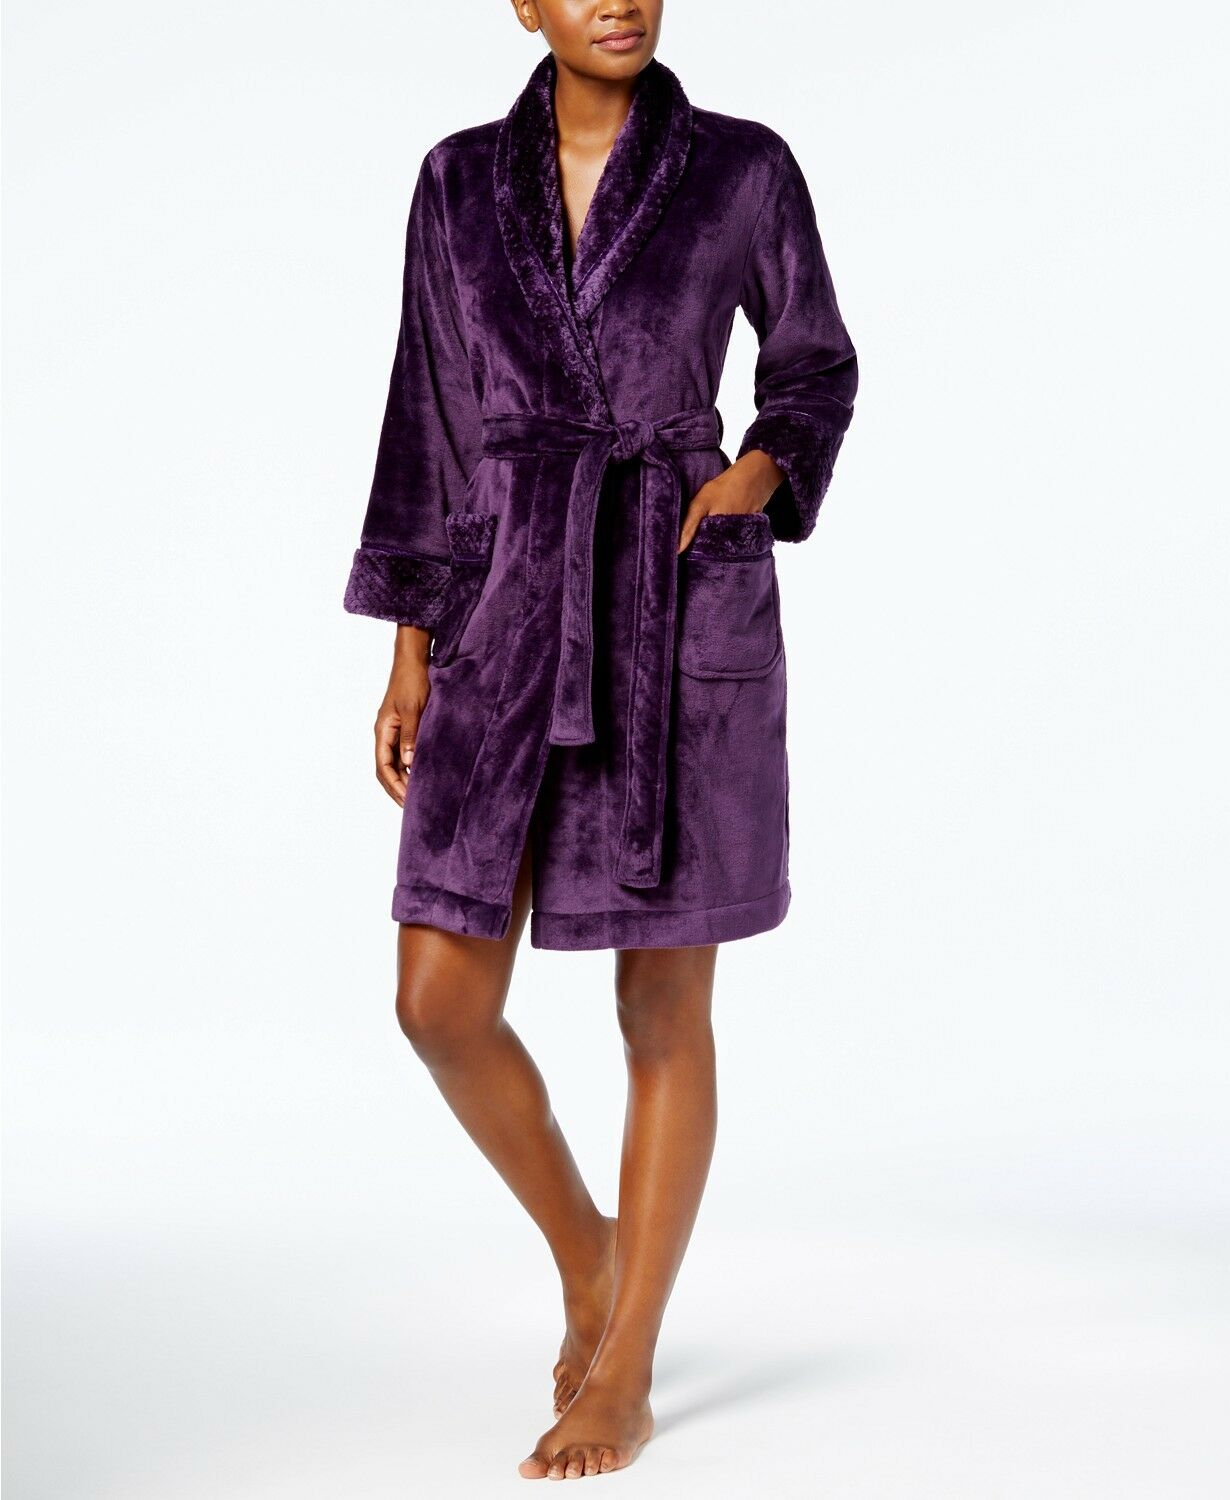 Charter Club Short Dimple Contrast Robe 171179M716 Size M Rich Concord